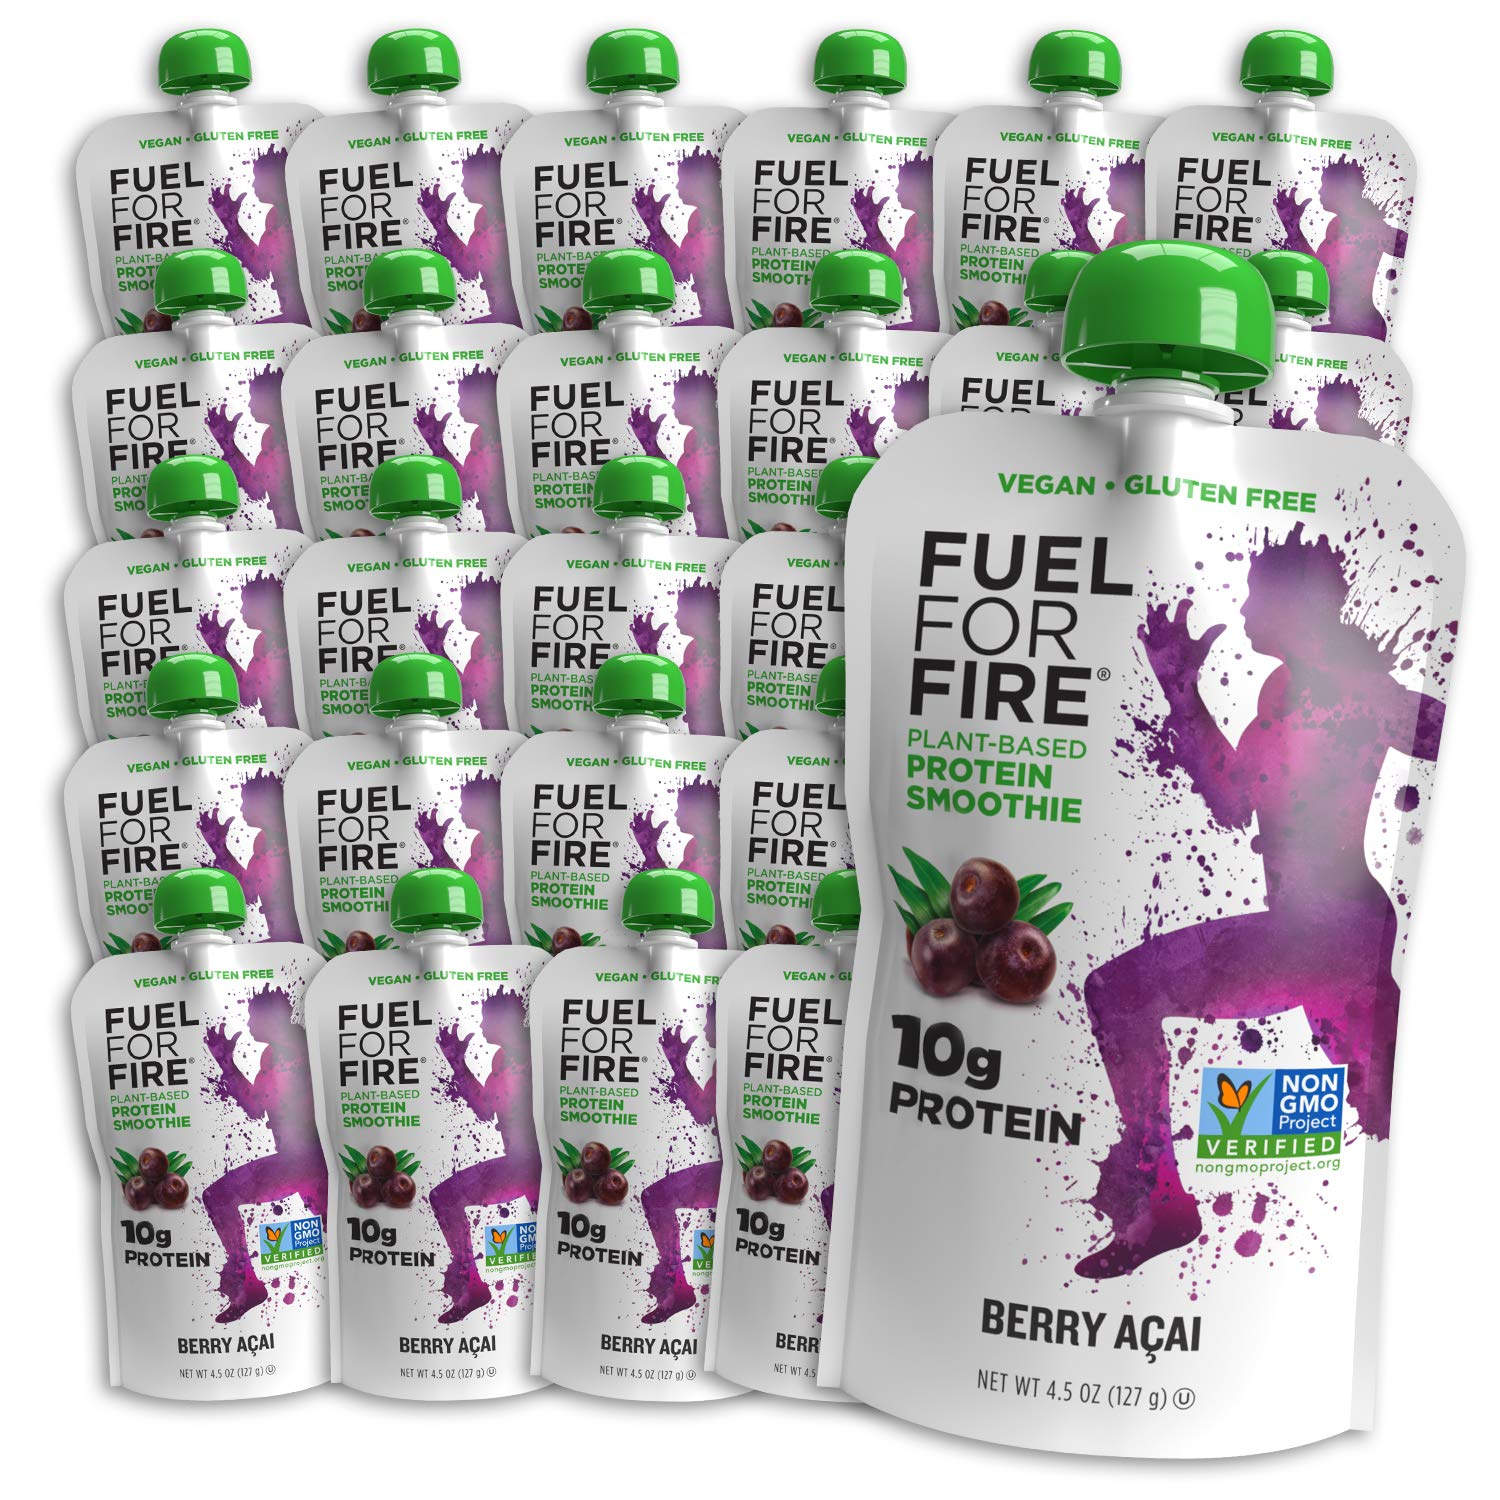 Fuel For Fire VEGAN - Berry Acai Smoothies (24 pack) Ready-to-Drink Squeeze Pouch | Soy Free, Lactose Free, Dairy Free, Plant-based Pea Protein, Vegan, Gluten Free | On the Go